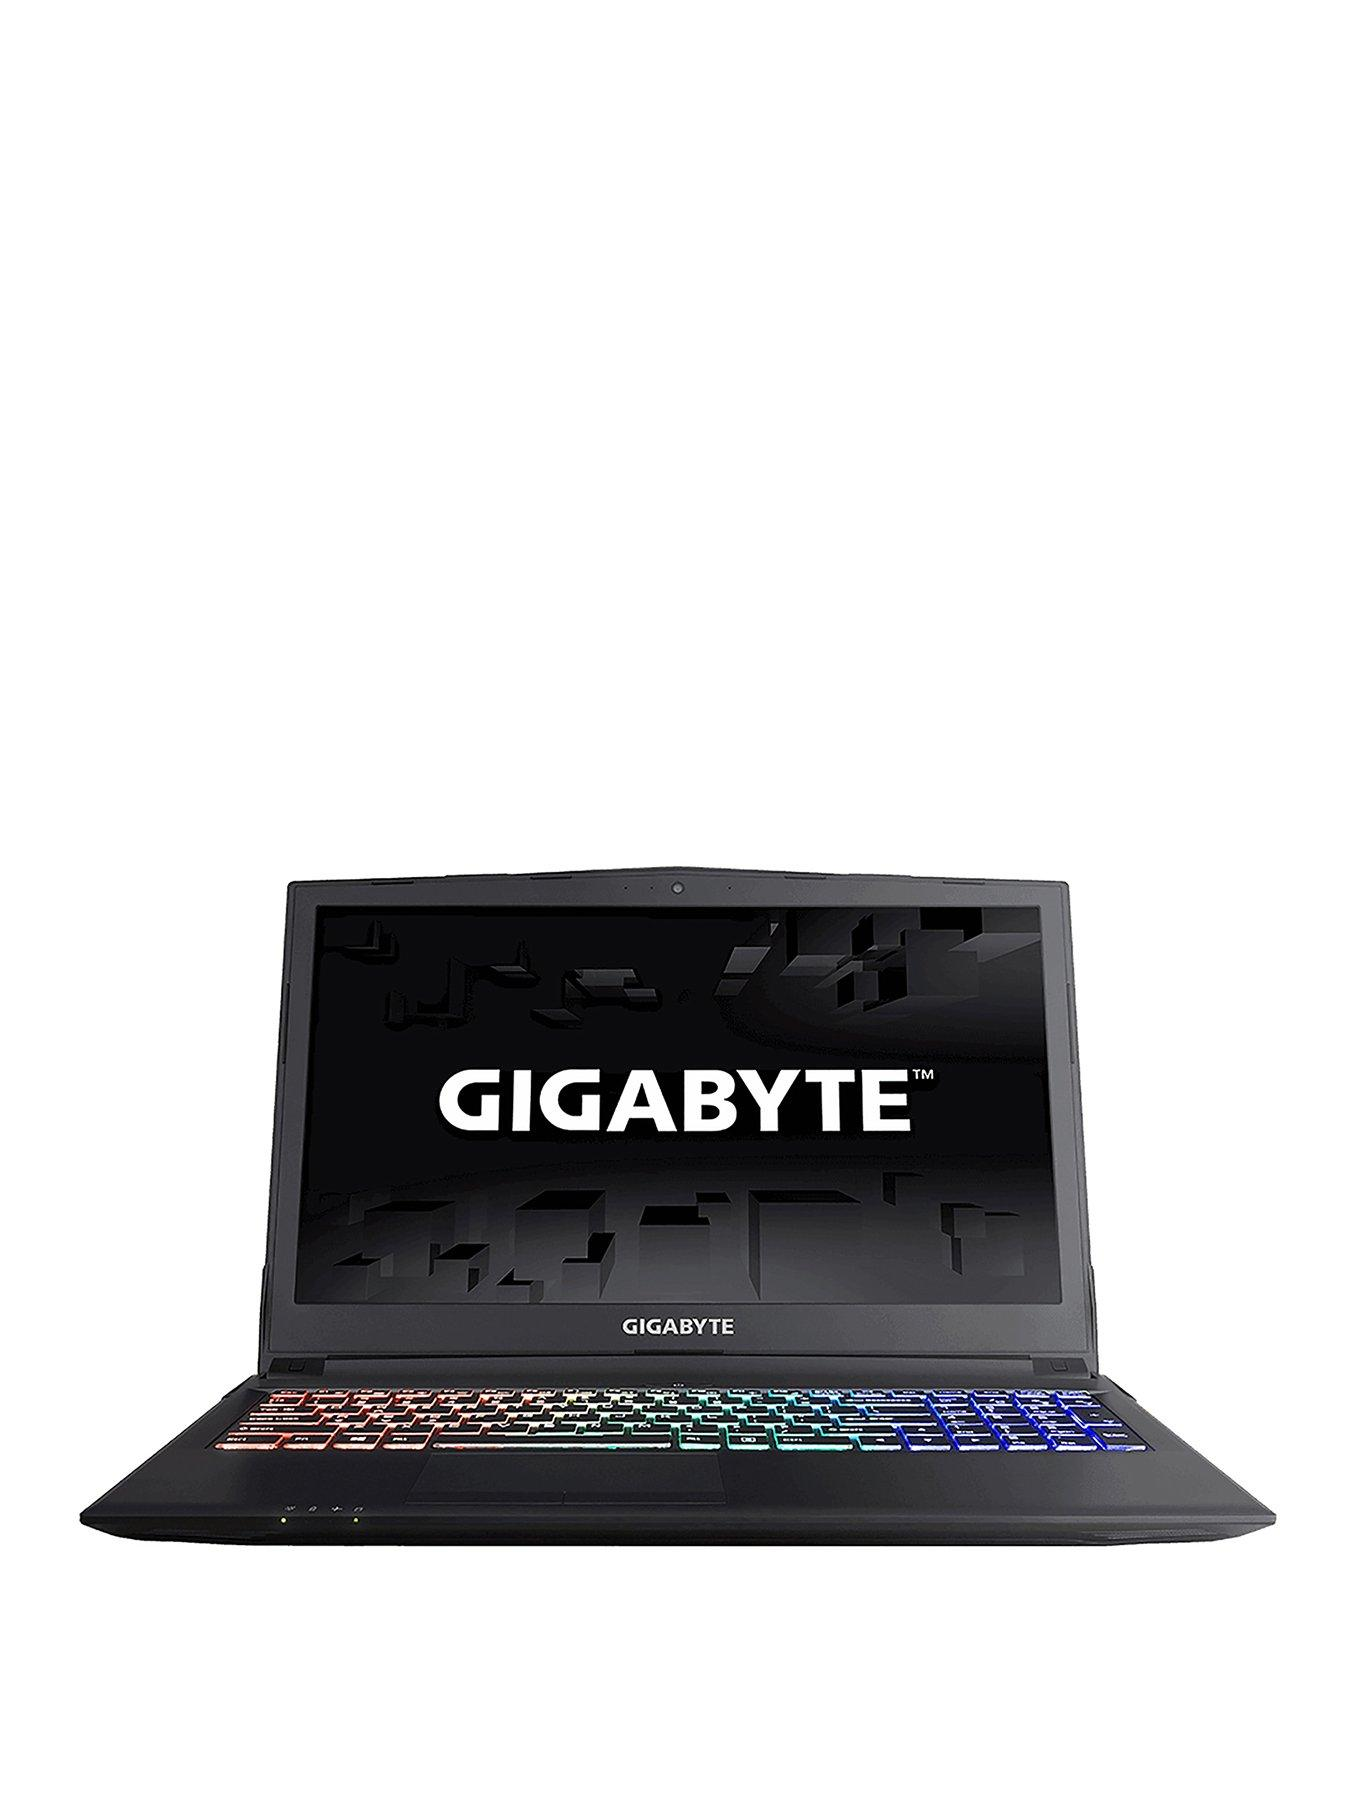 GIGABYTE SABRE17W 120Hz VR Ready, Intel® Core™ i7 8750H, GeForce GTX 1060 6Gb, 256Gb PCIe SSD + 1Tb HDD, 16Gb RAM, 17.3 inch Gaming Laptop + Call of Duty Black Ops 4